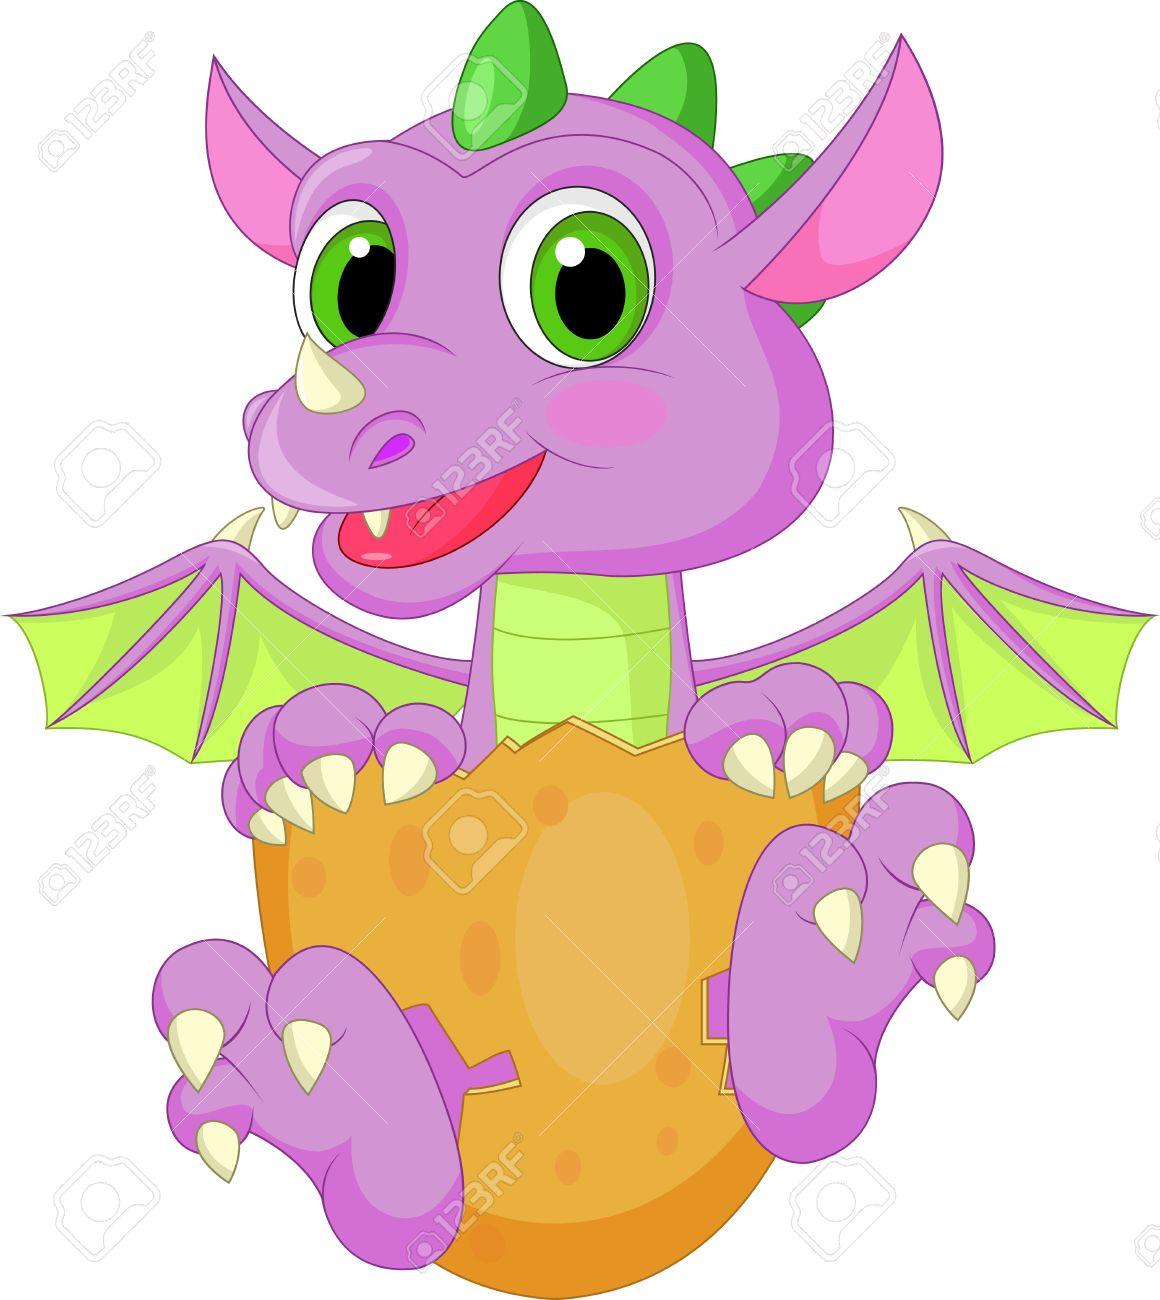 1160x1300 Baby Dinosaur Cartoon Hatching Royalty Free Cliparts, Vectors, And